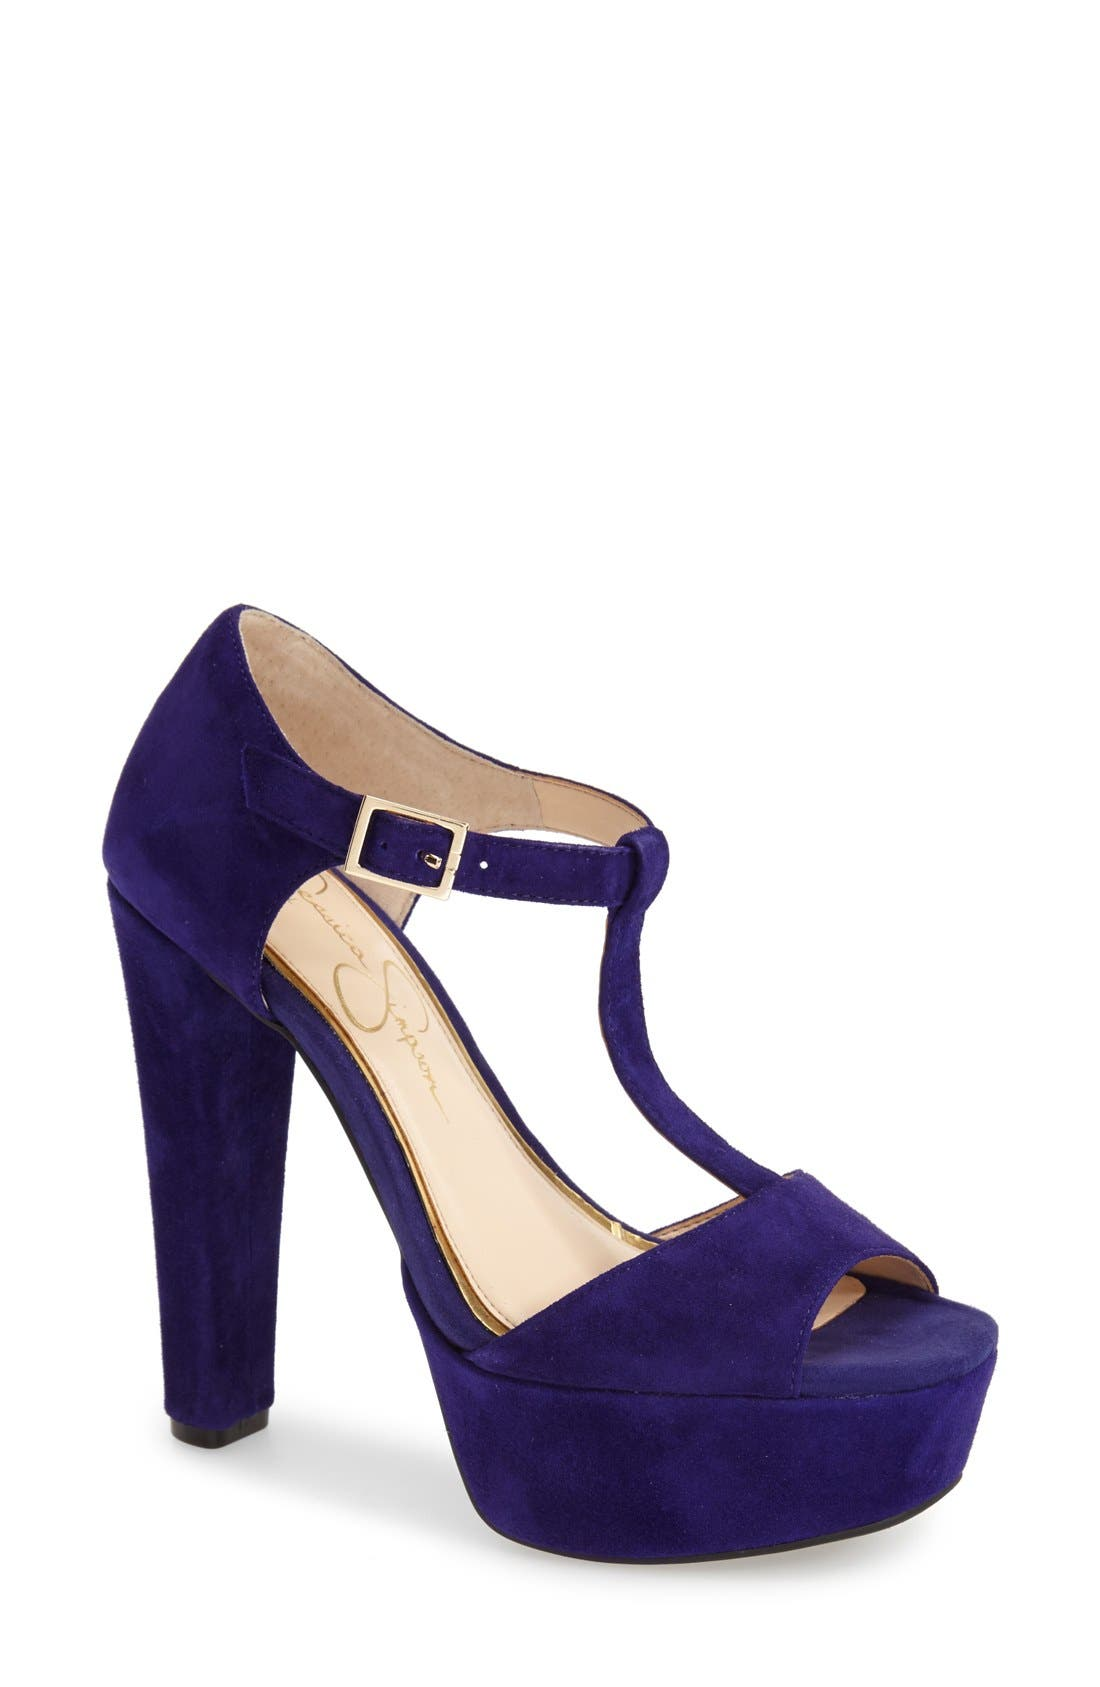 Alternate Image 1 Selected - Jessica Simpson 'Adelinah' T-Strap Platform Sandal (Women)